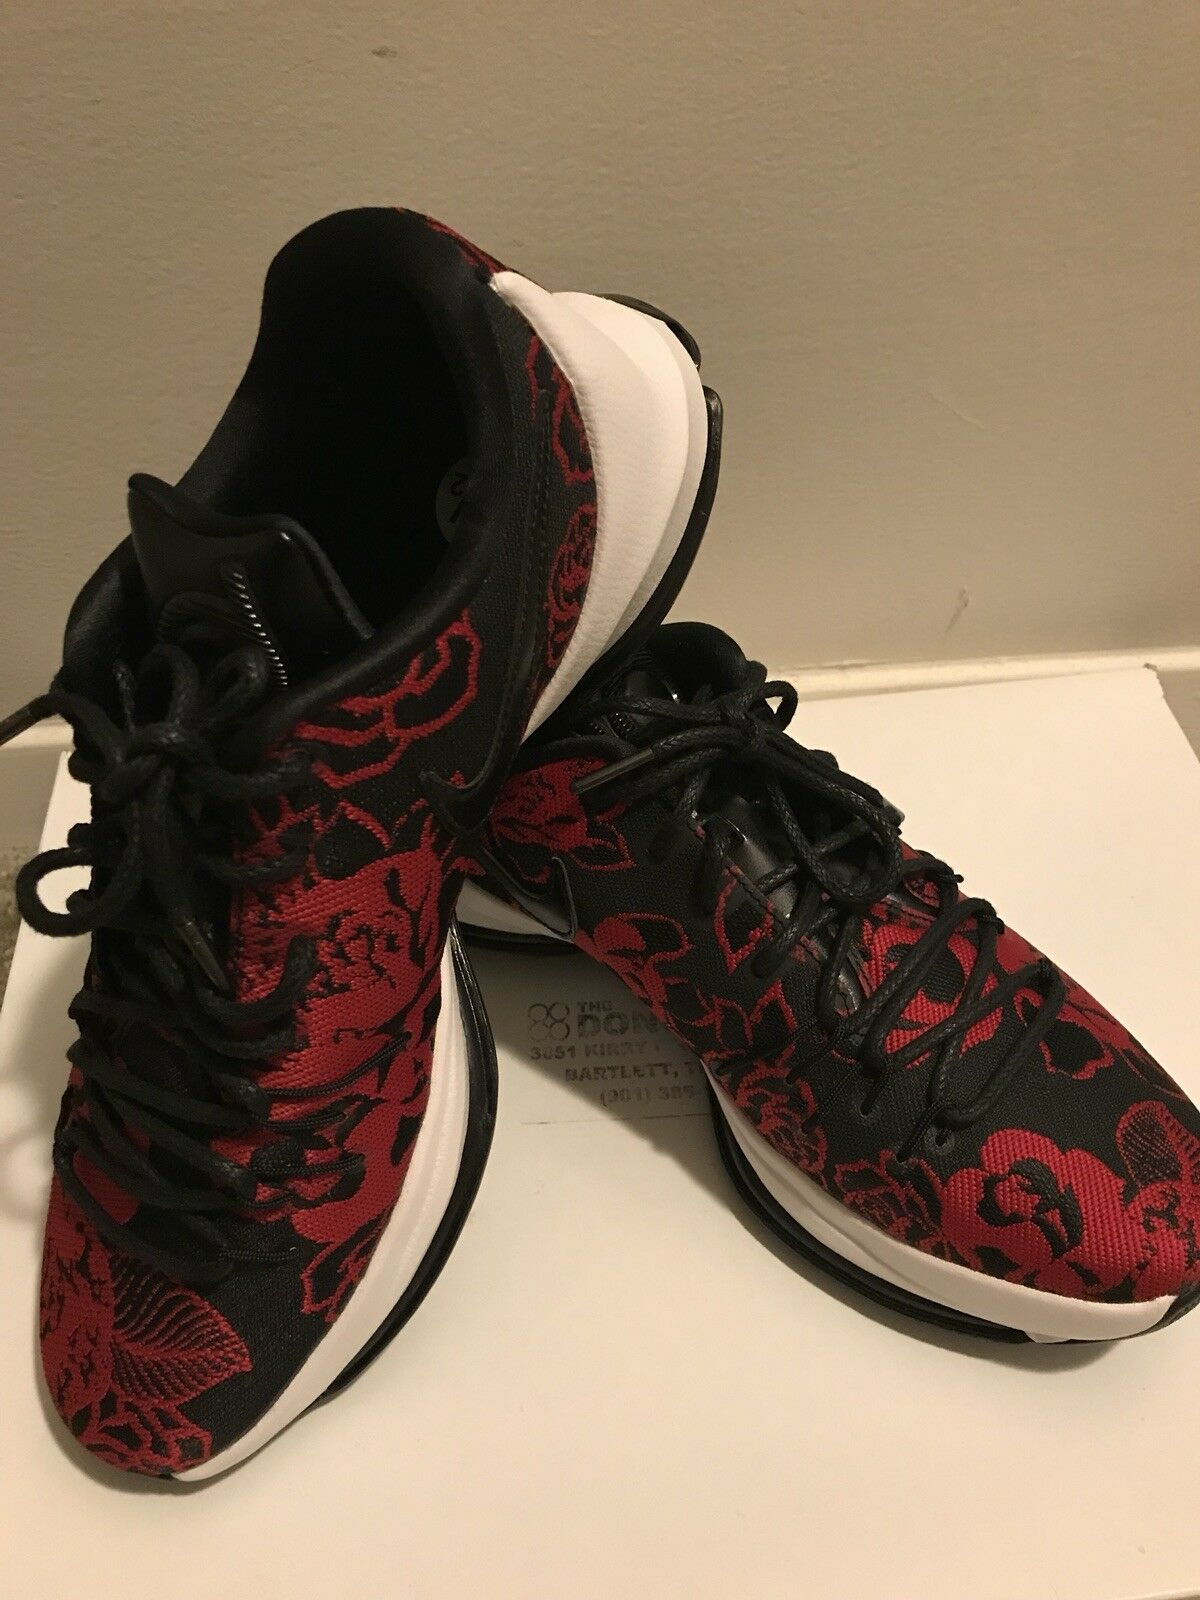 New Nike KD Mens Shoes 9.5. Red Floral US Size 9.5. Shoes 806393-004 69dc21